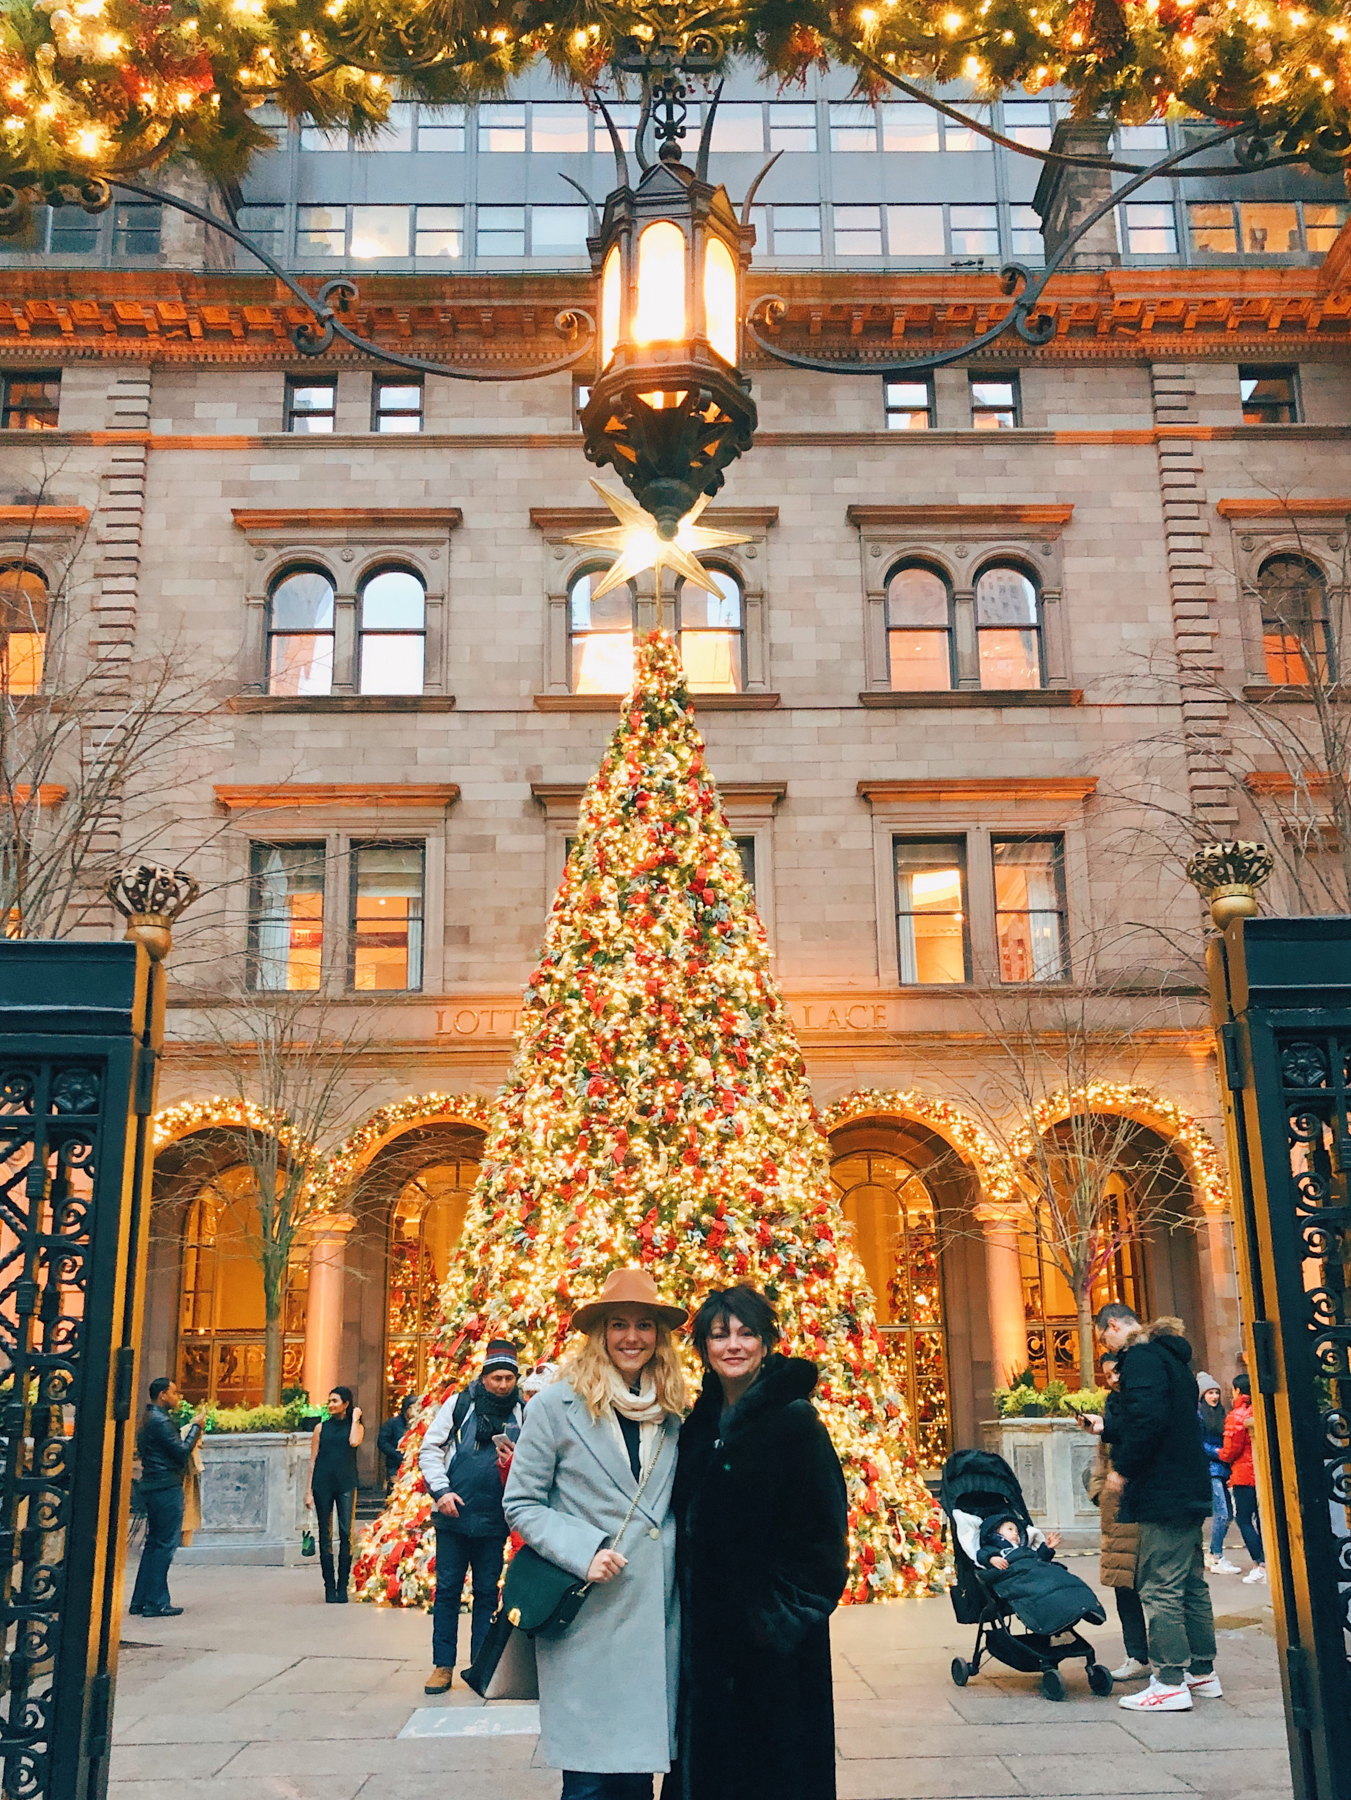 My mom and I at Lotte New York Palace